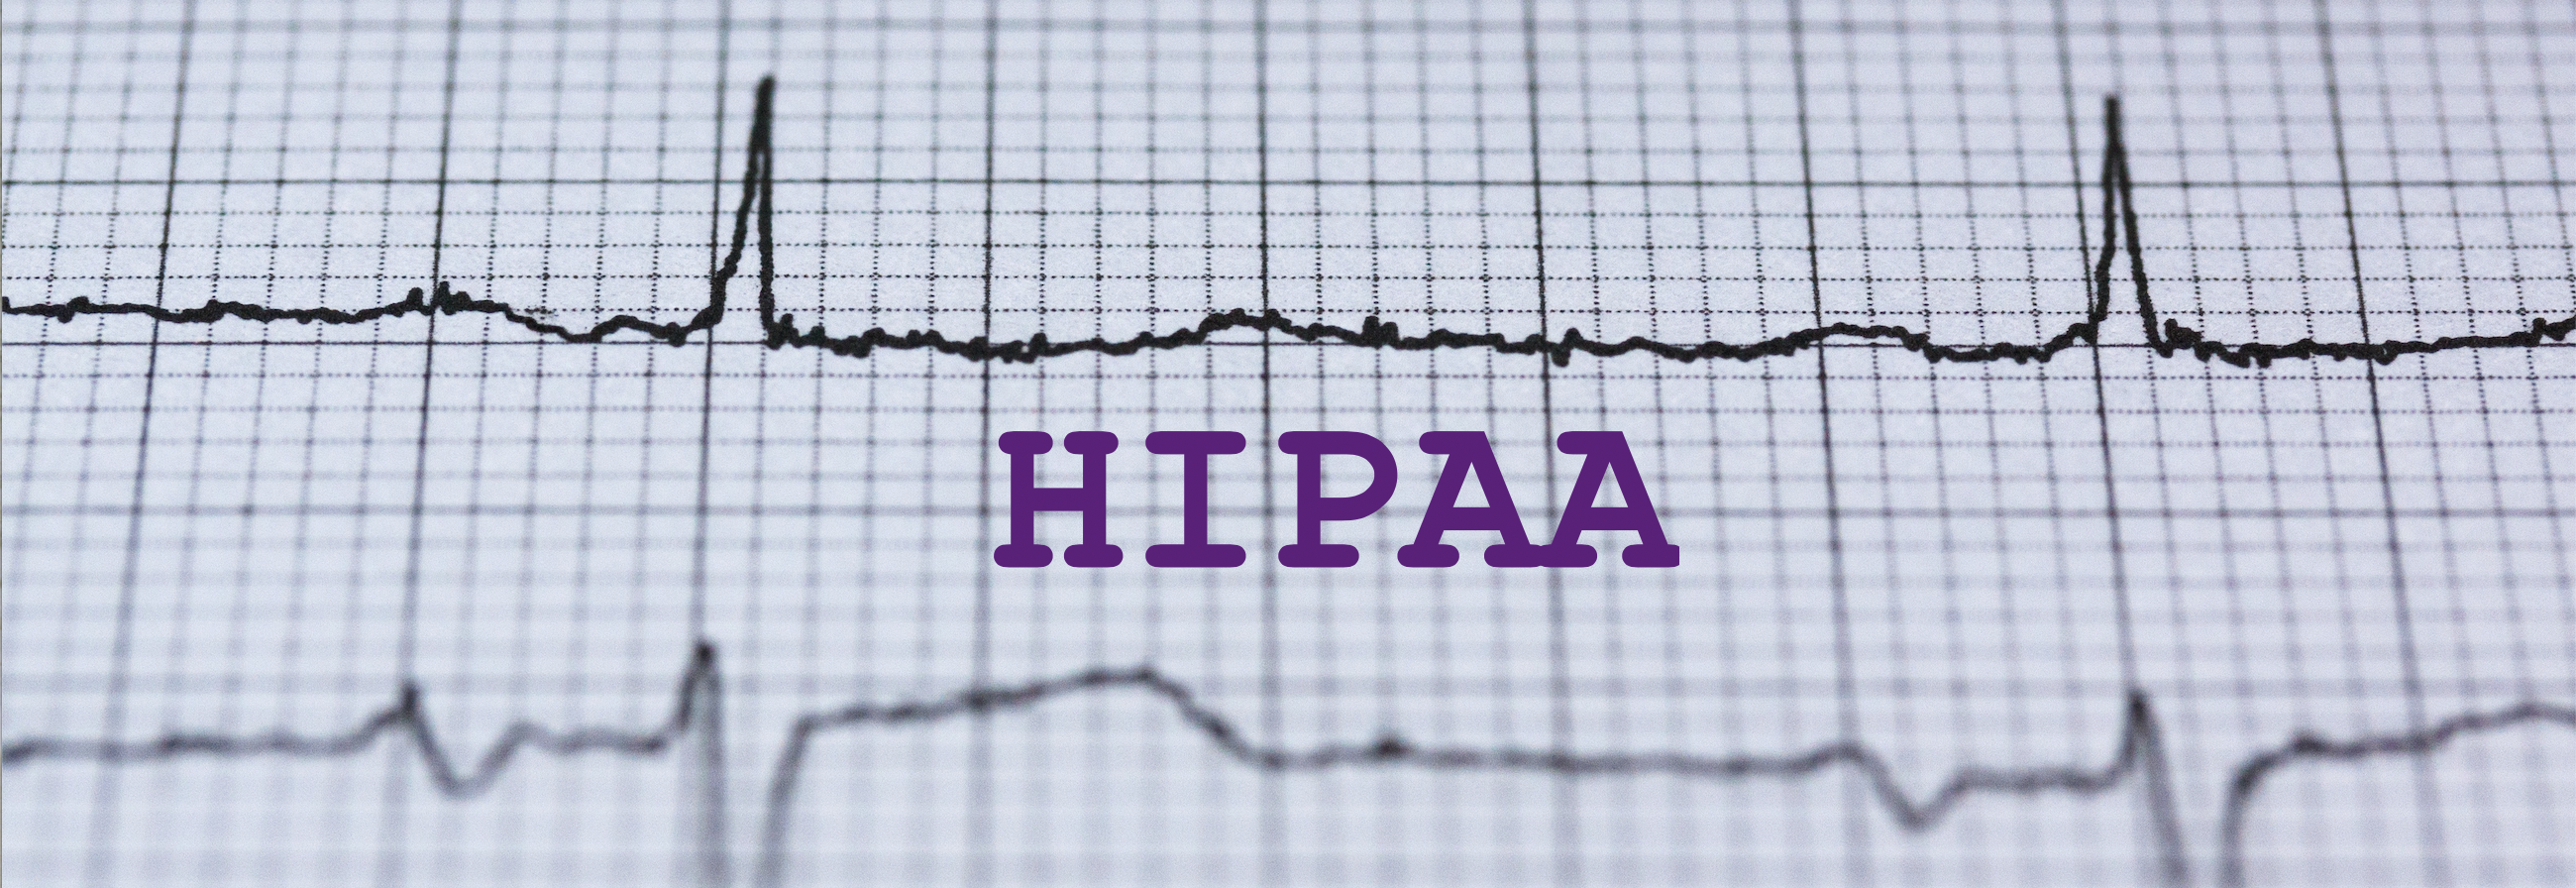 HIPAA & Passwords: https://www.enzoic.com/hipaa-password/